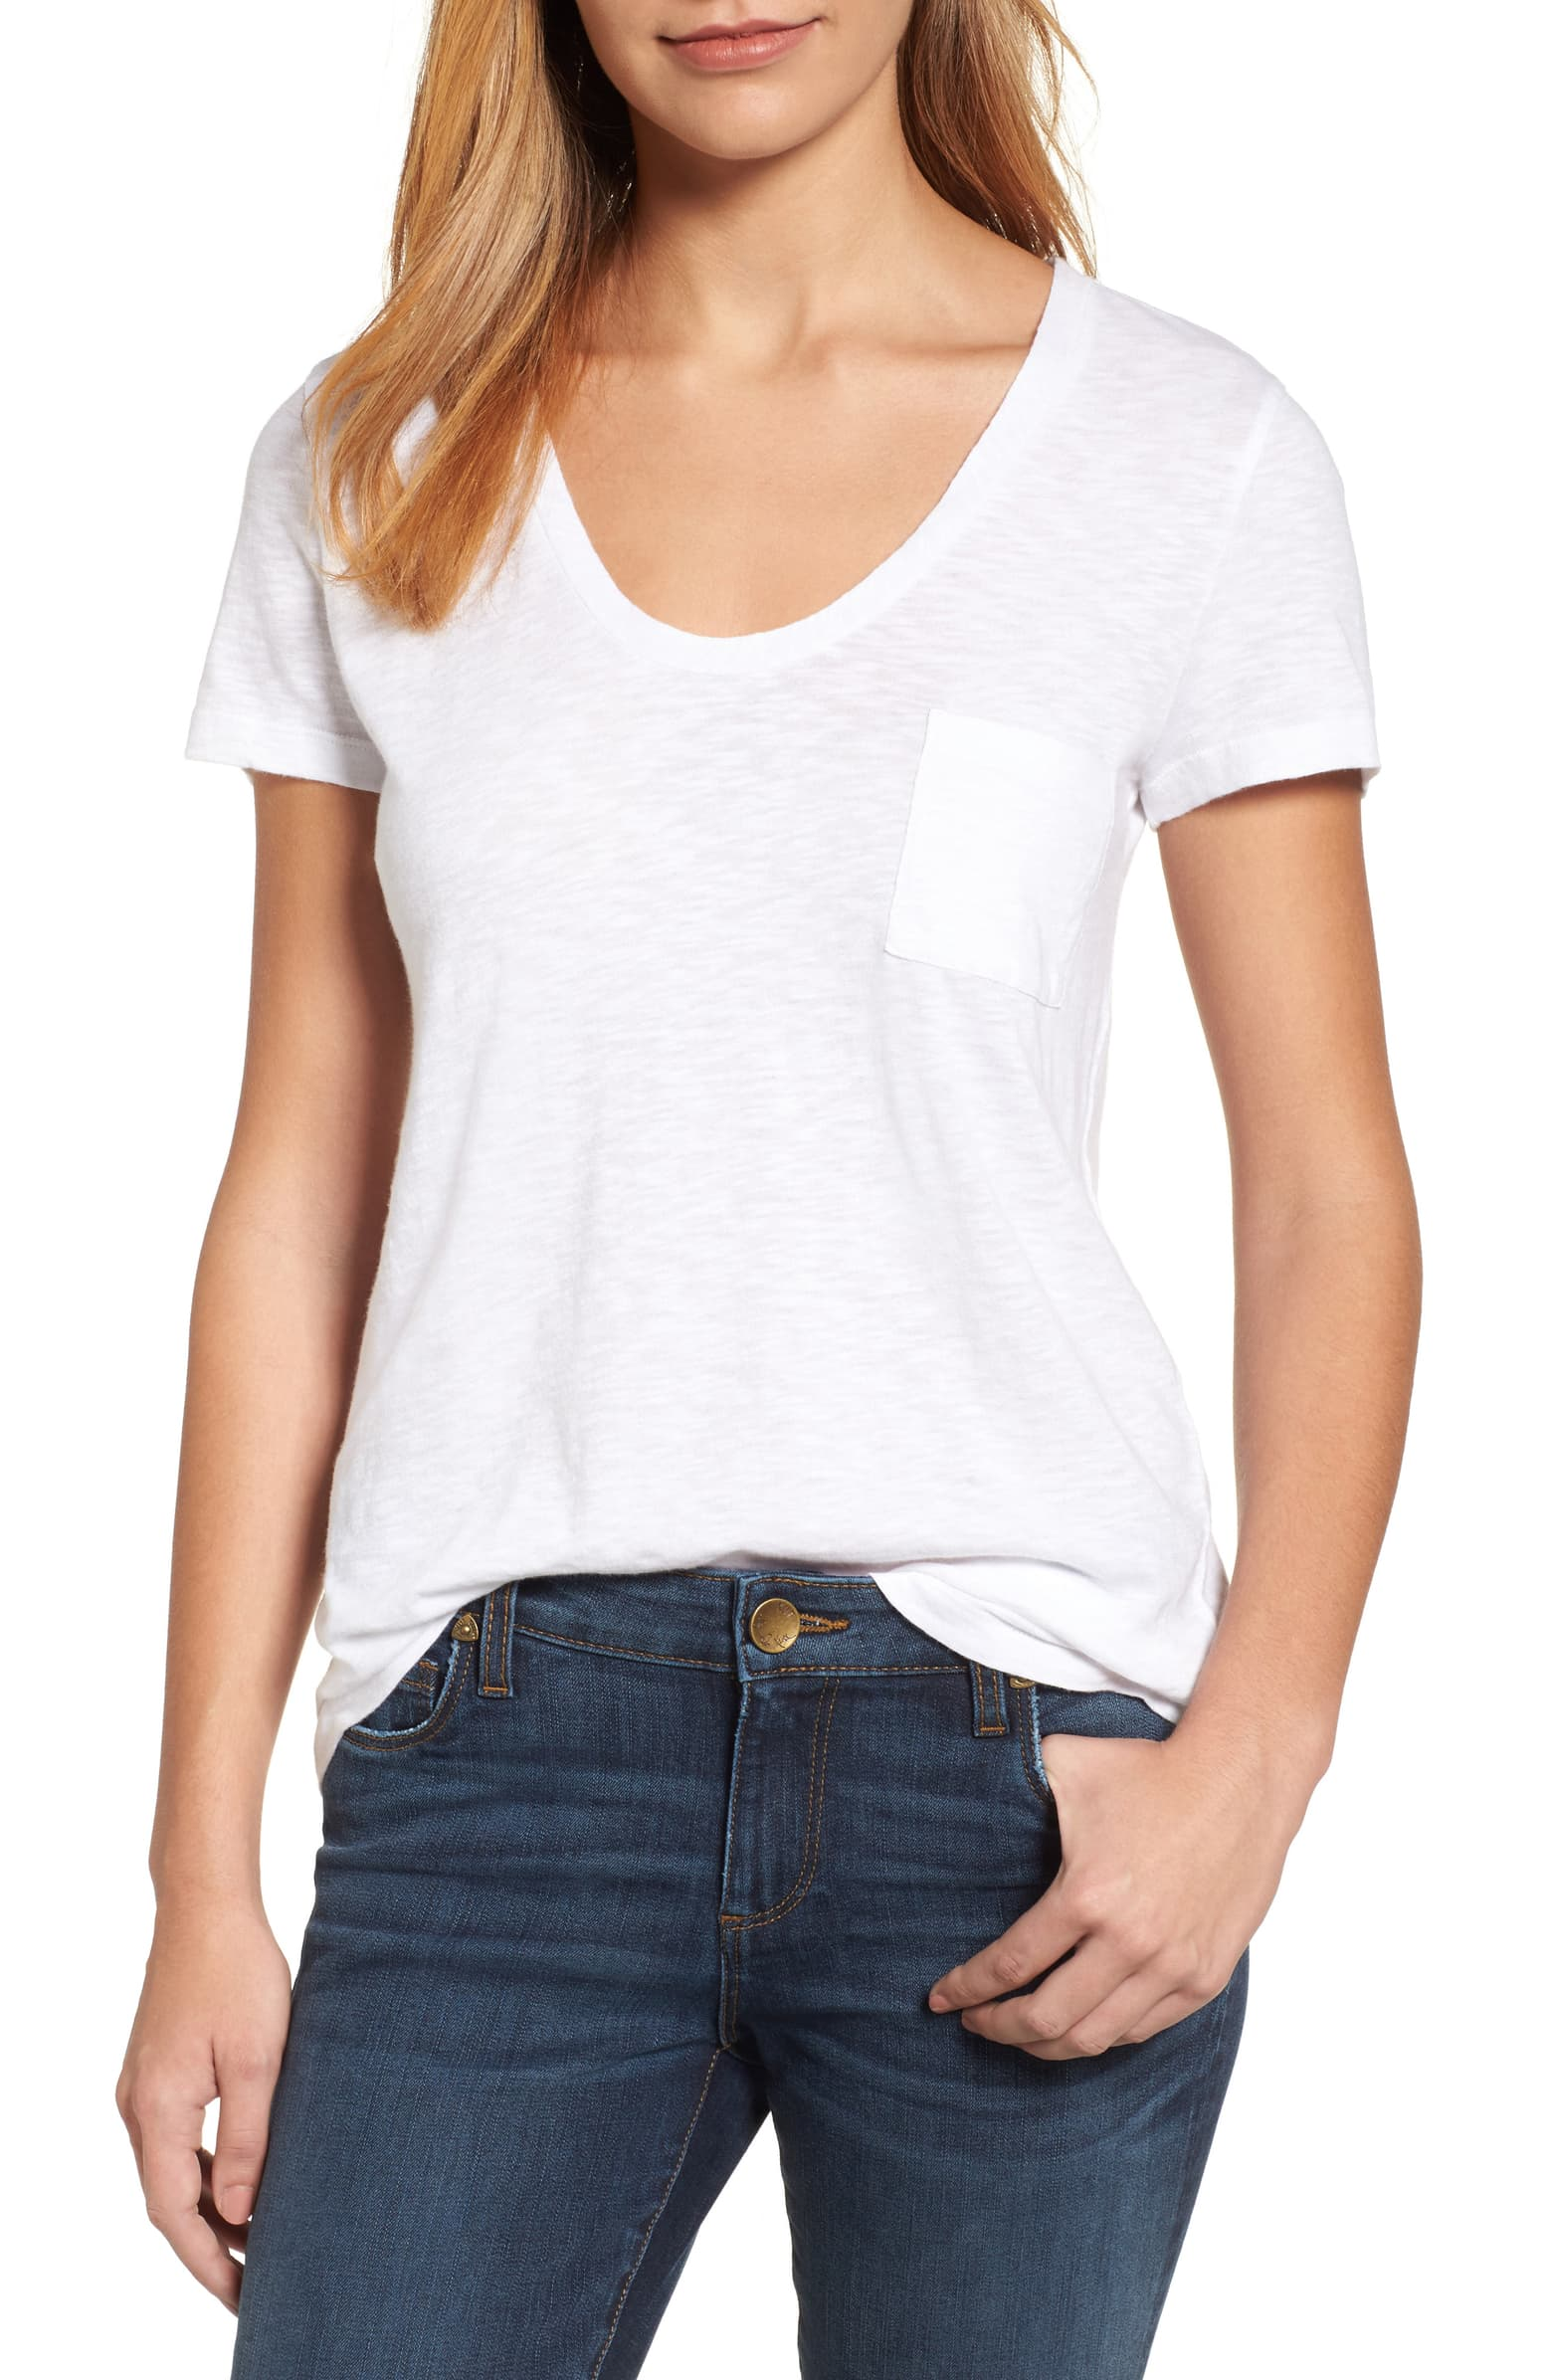 Nordstrom Anniversary Sale - #NSALE - Nordstrom Sale - Fall Fashion - Women's Fashion - Sabby Style-19